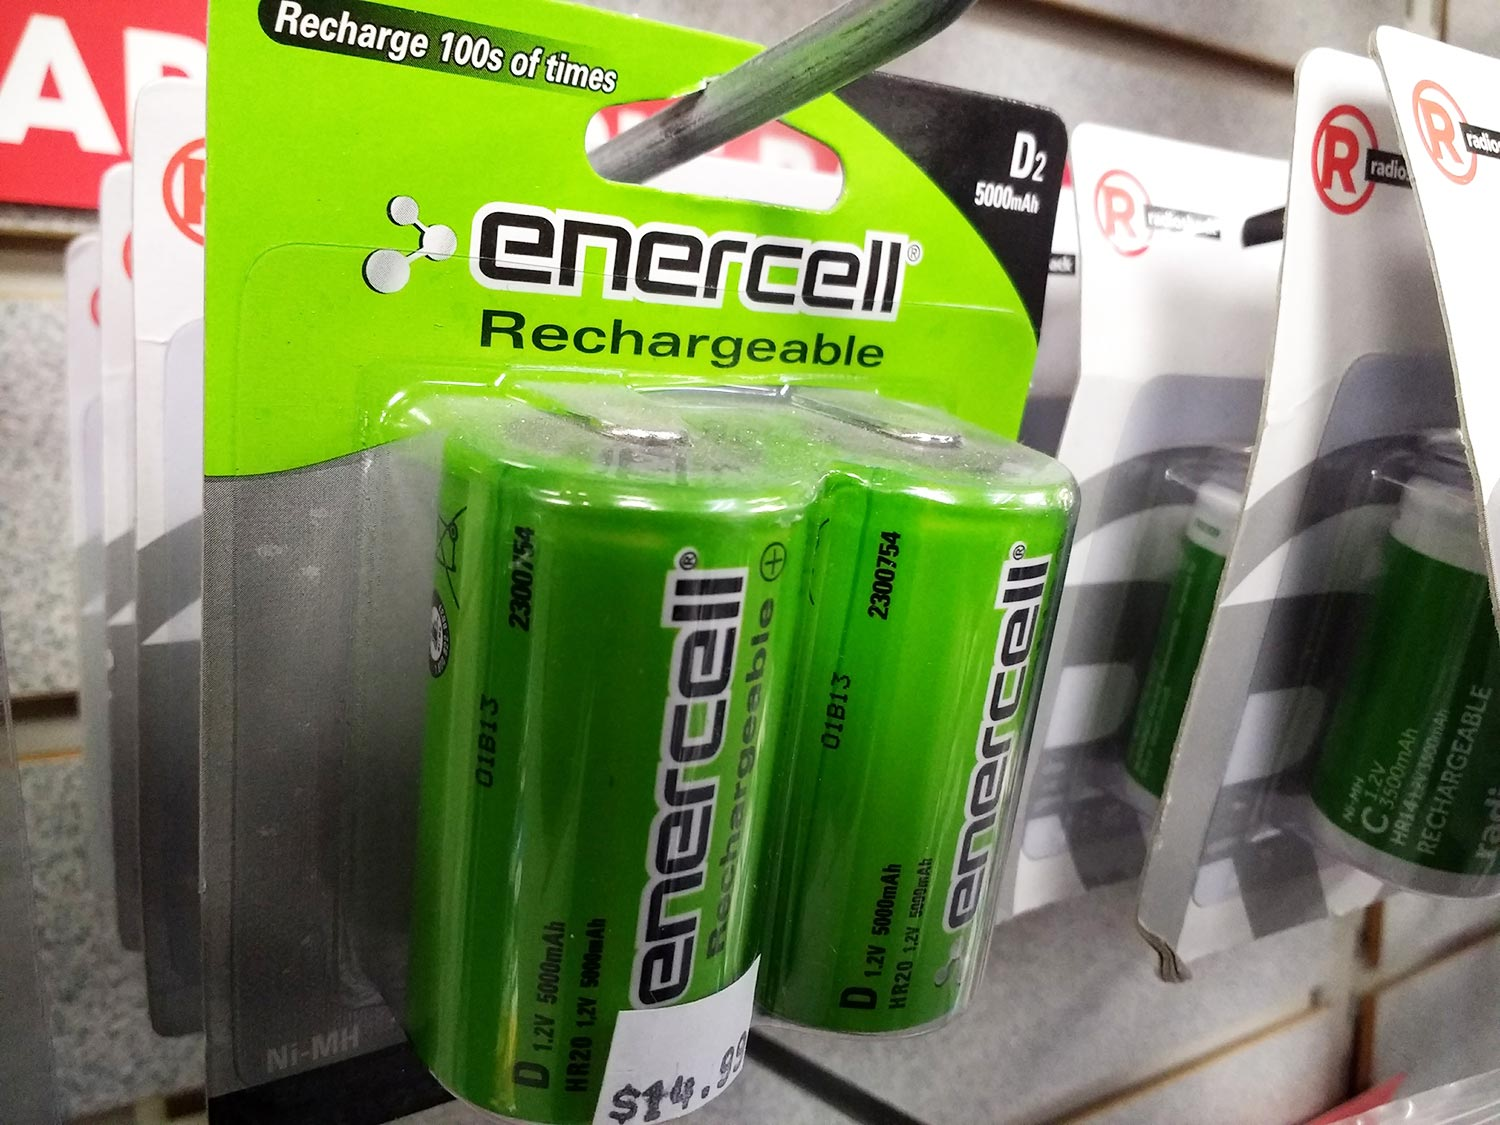 Our selection of rechargeable batteries includes larger sizes such as C and D cells.